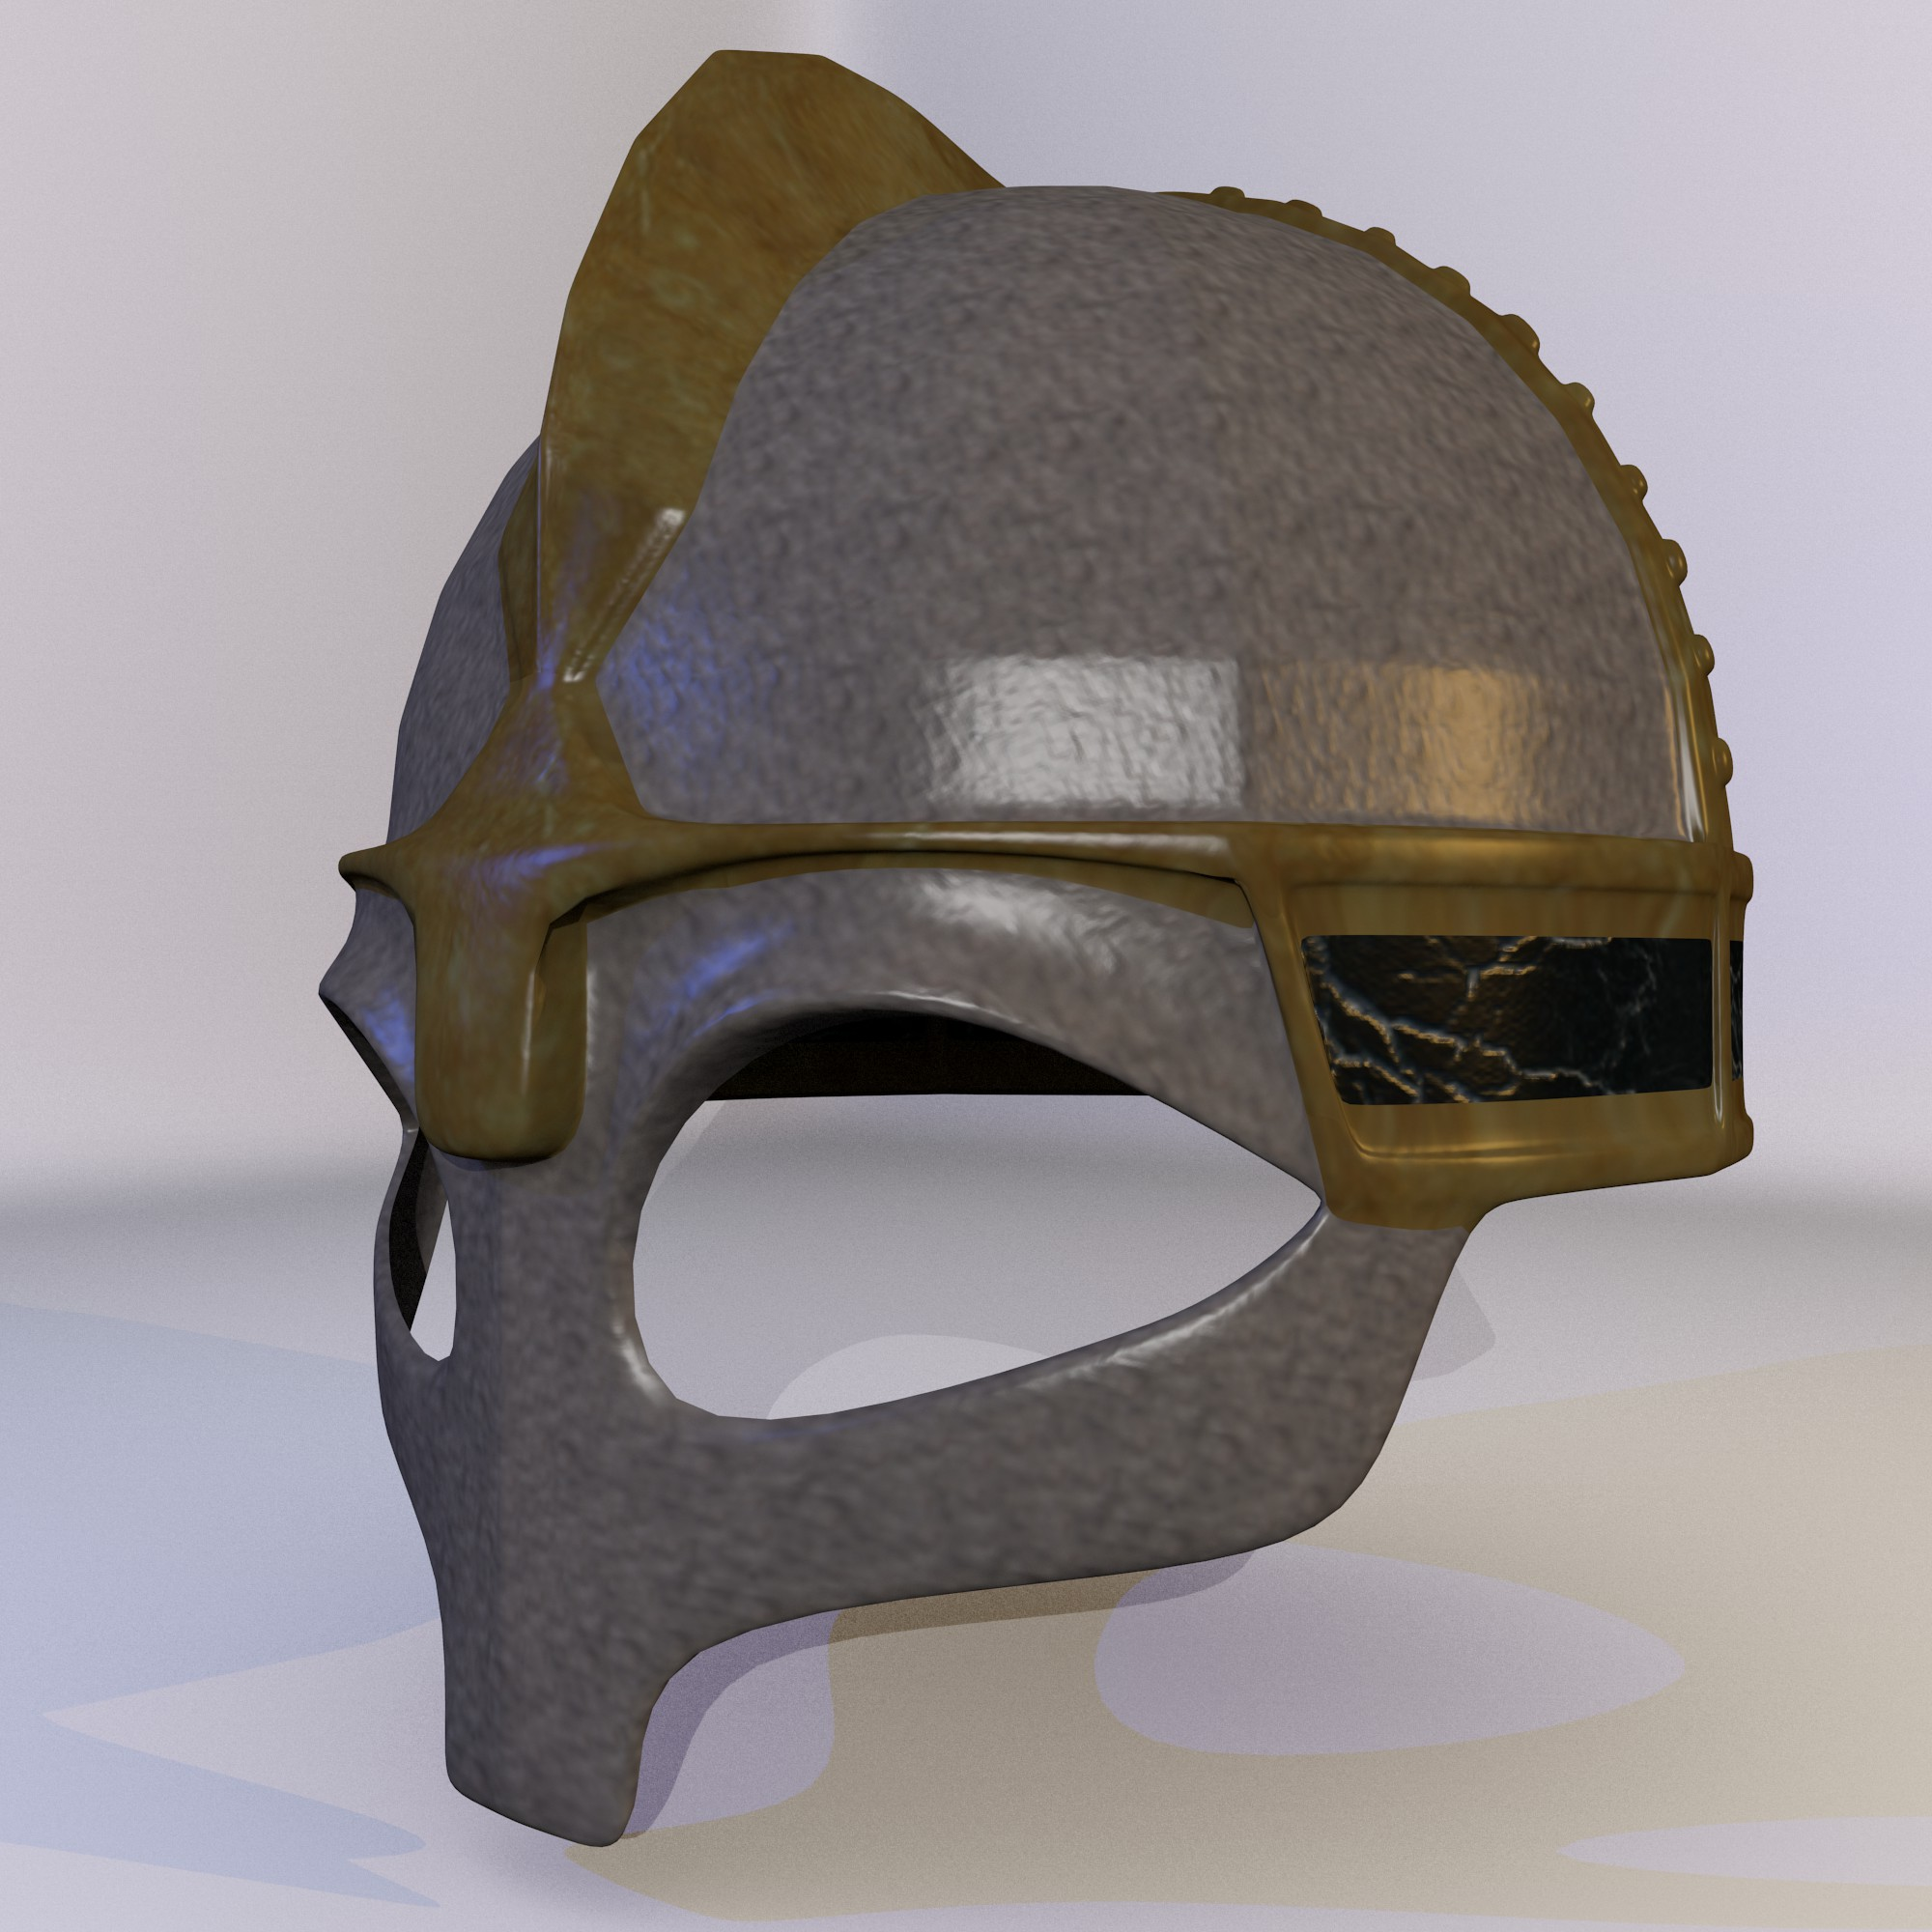 ancient viking helmet 3d model fbx blend dae obj 118086